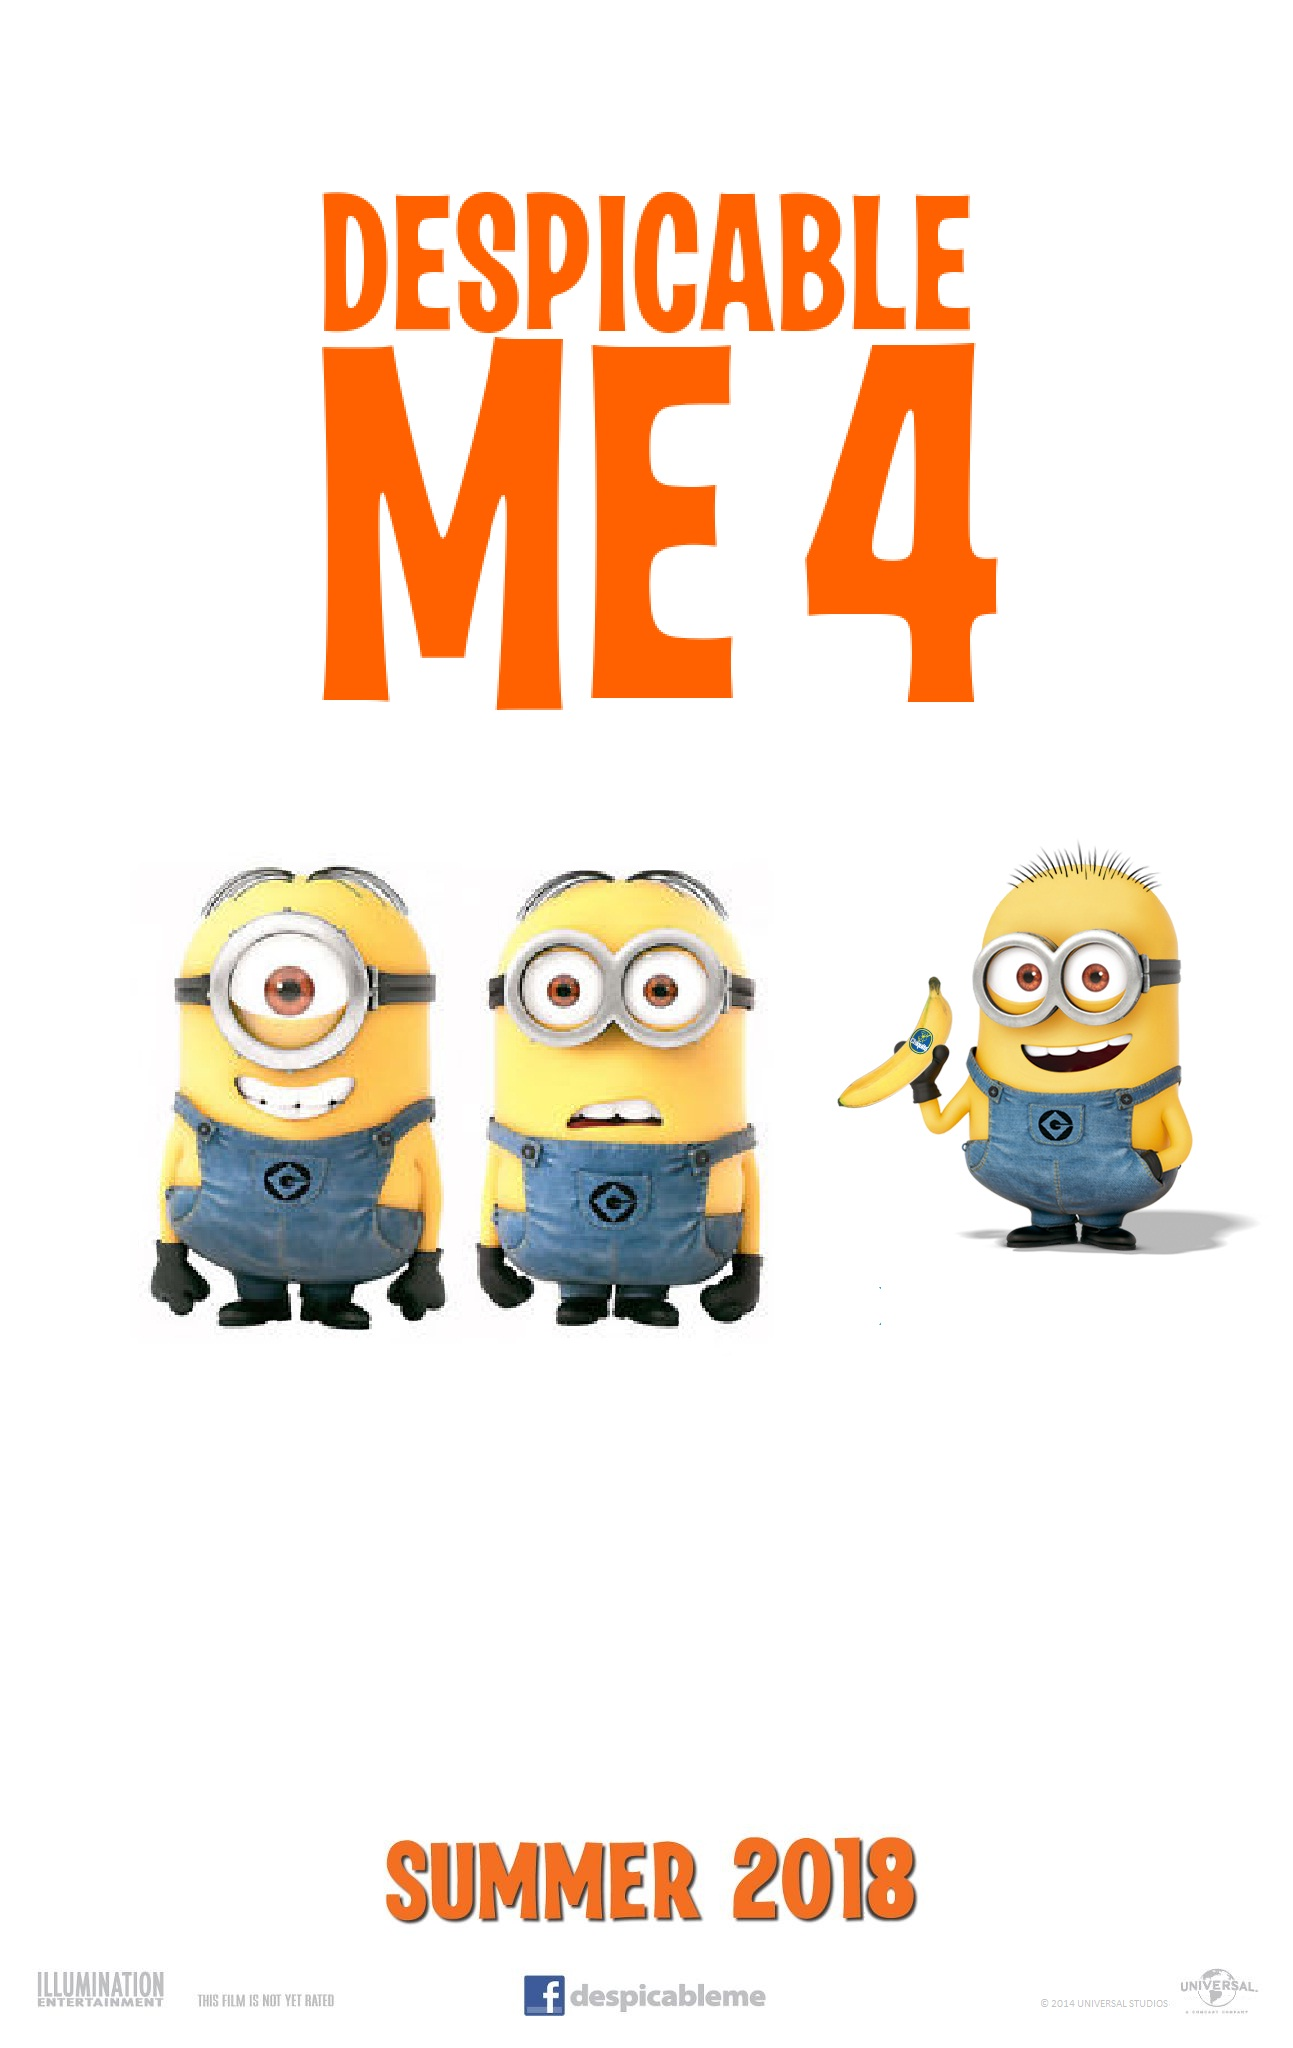 despicable me 4  bobbyisawesome u0026 39 s idea